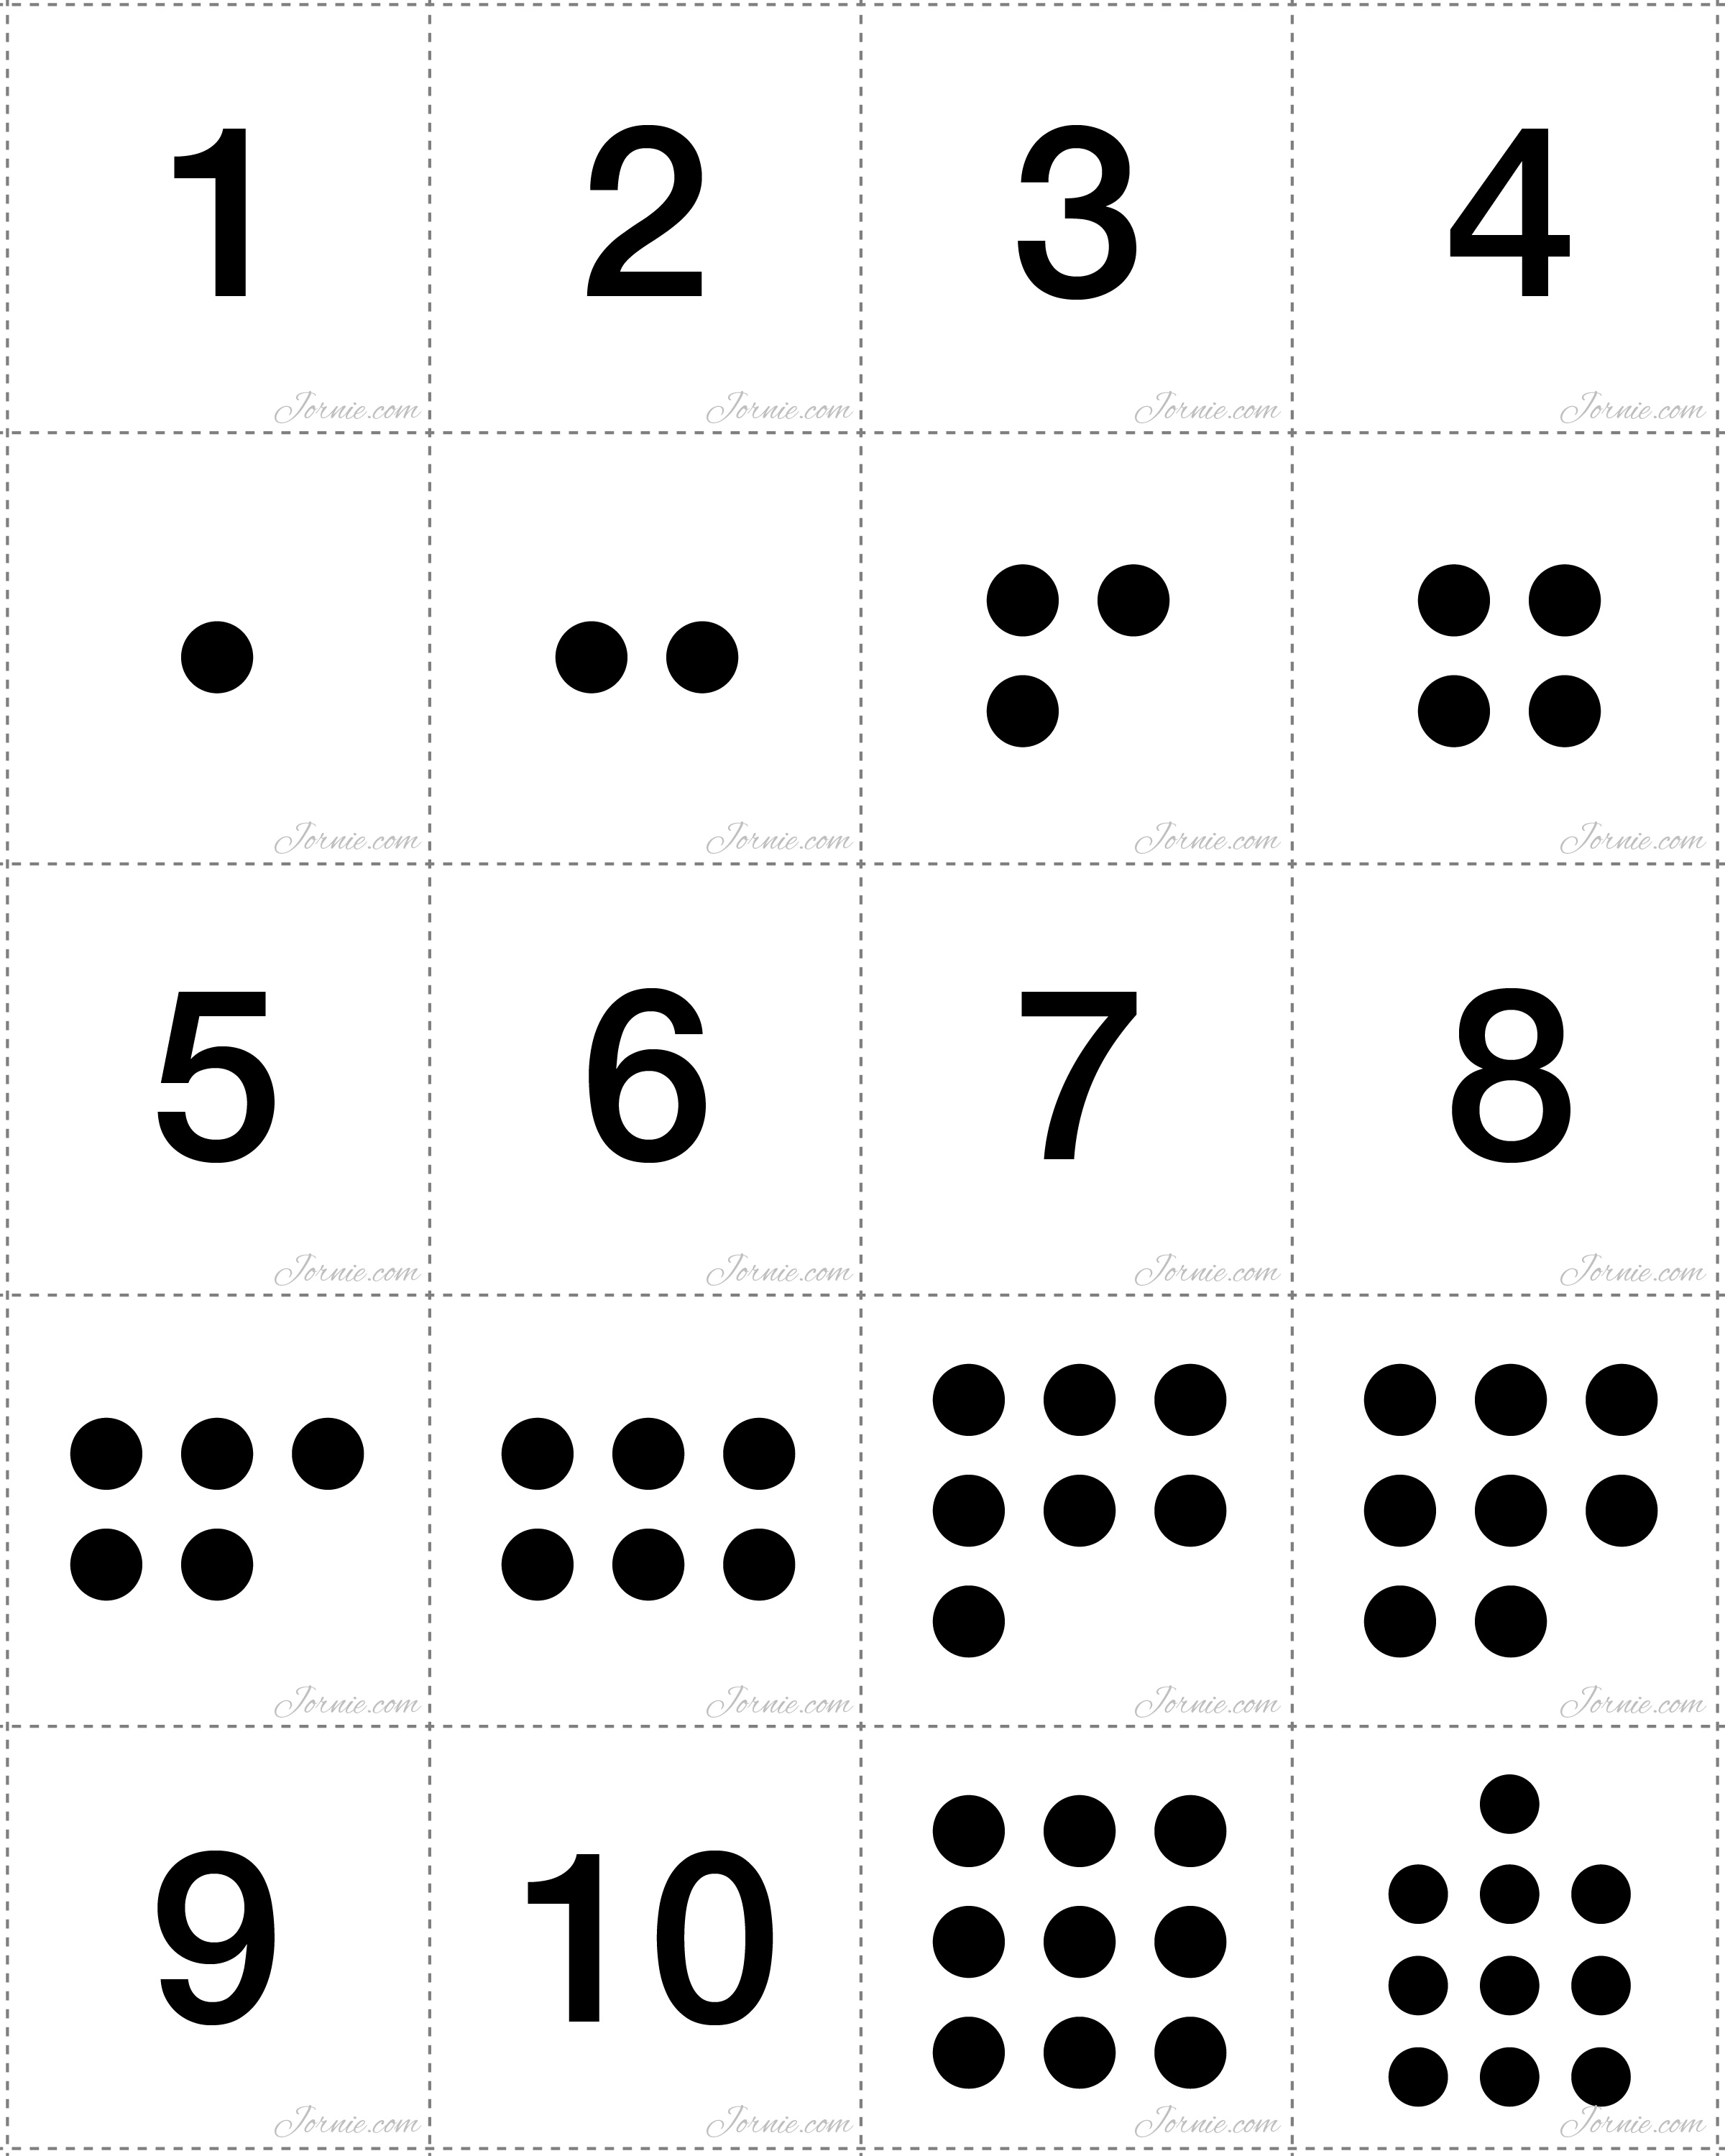 5 Images of Printable Dot Cards 1 10